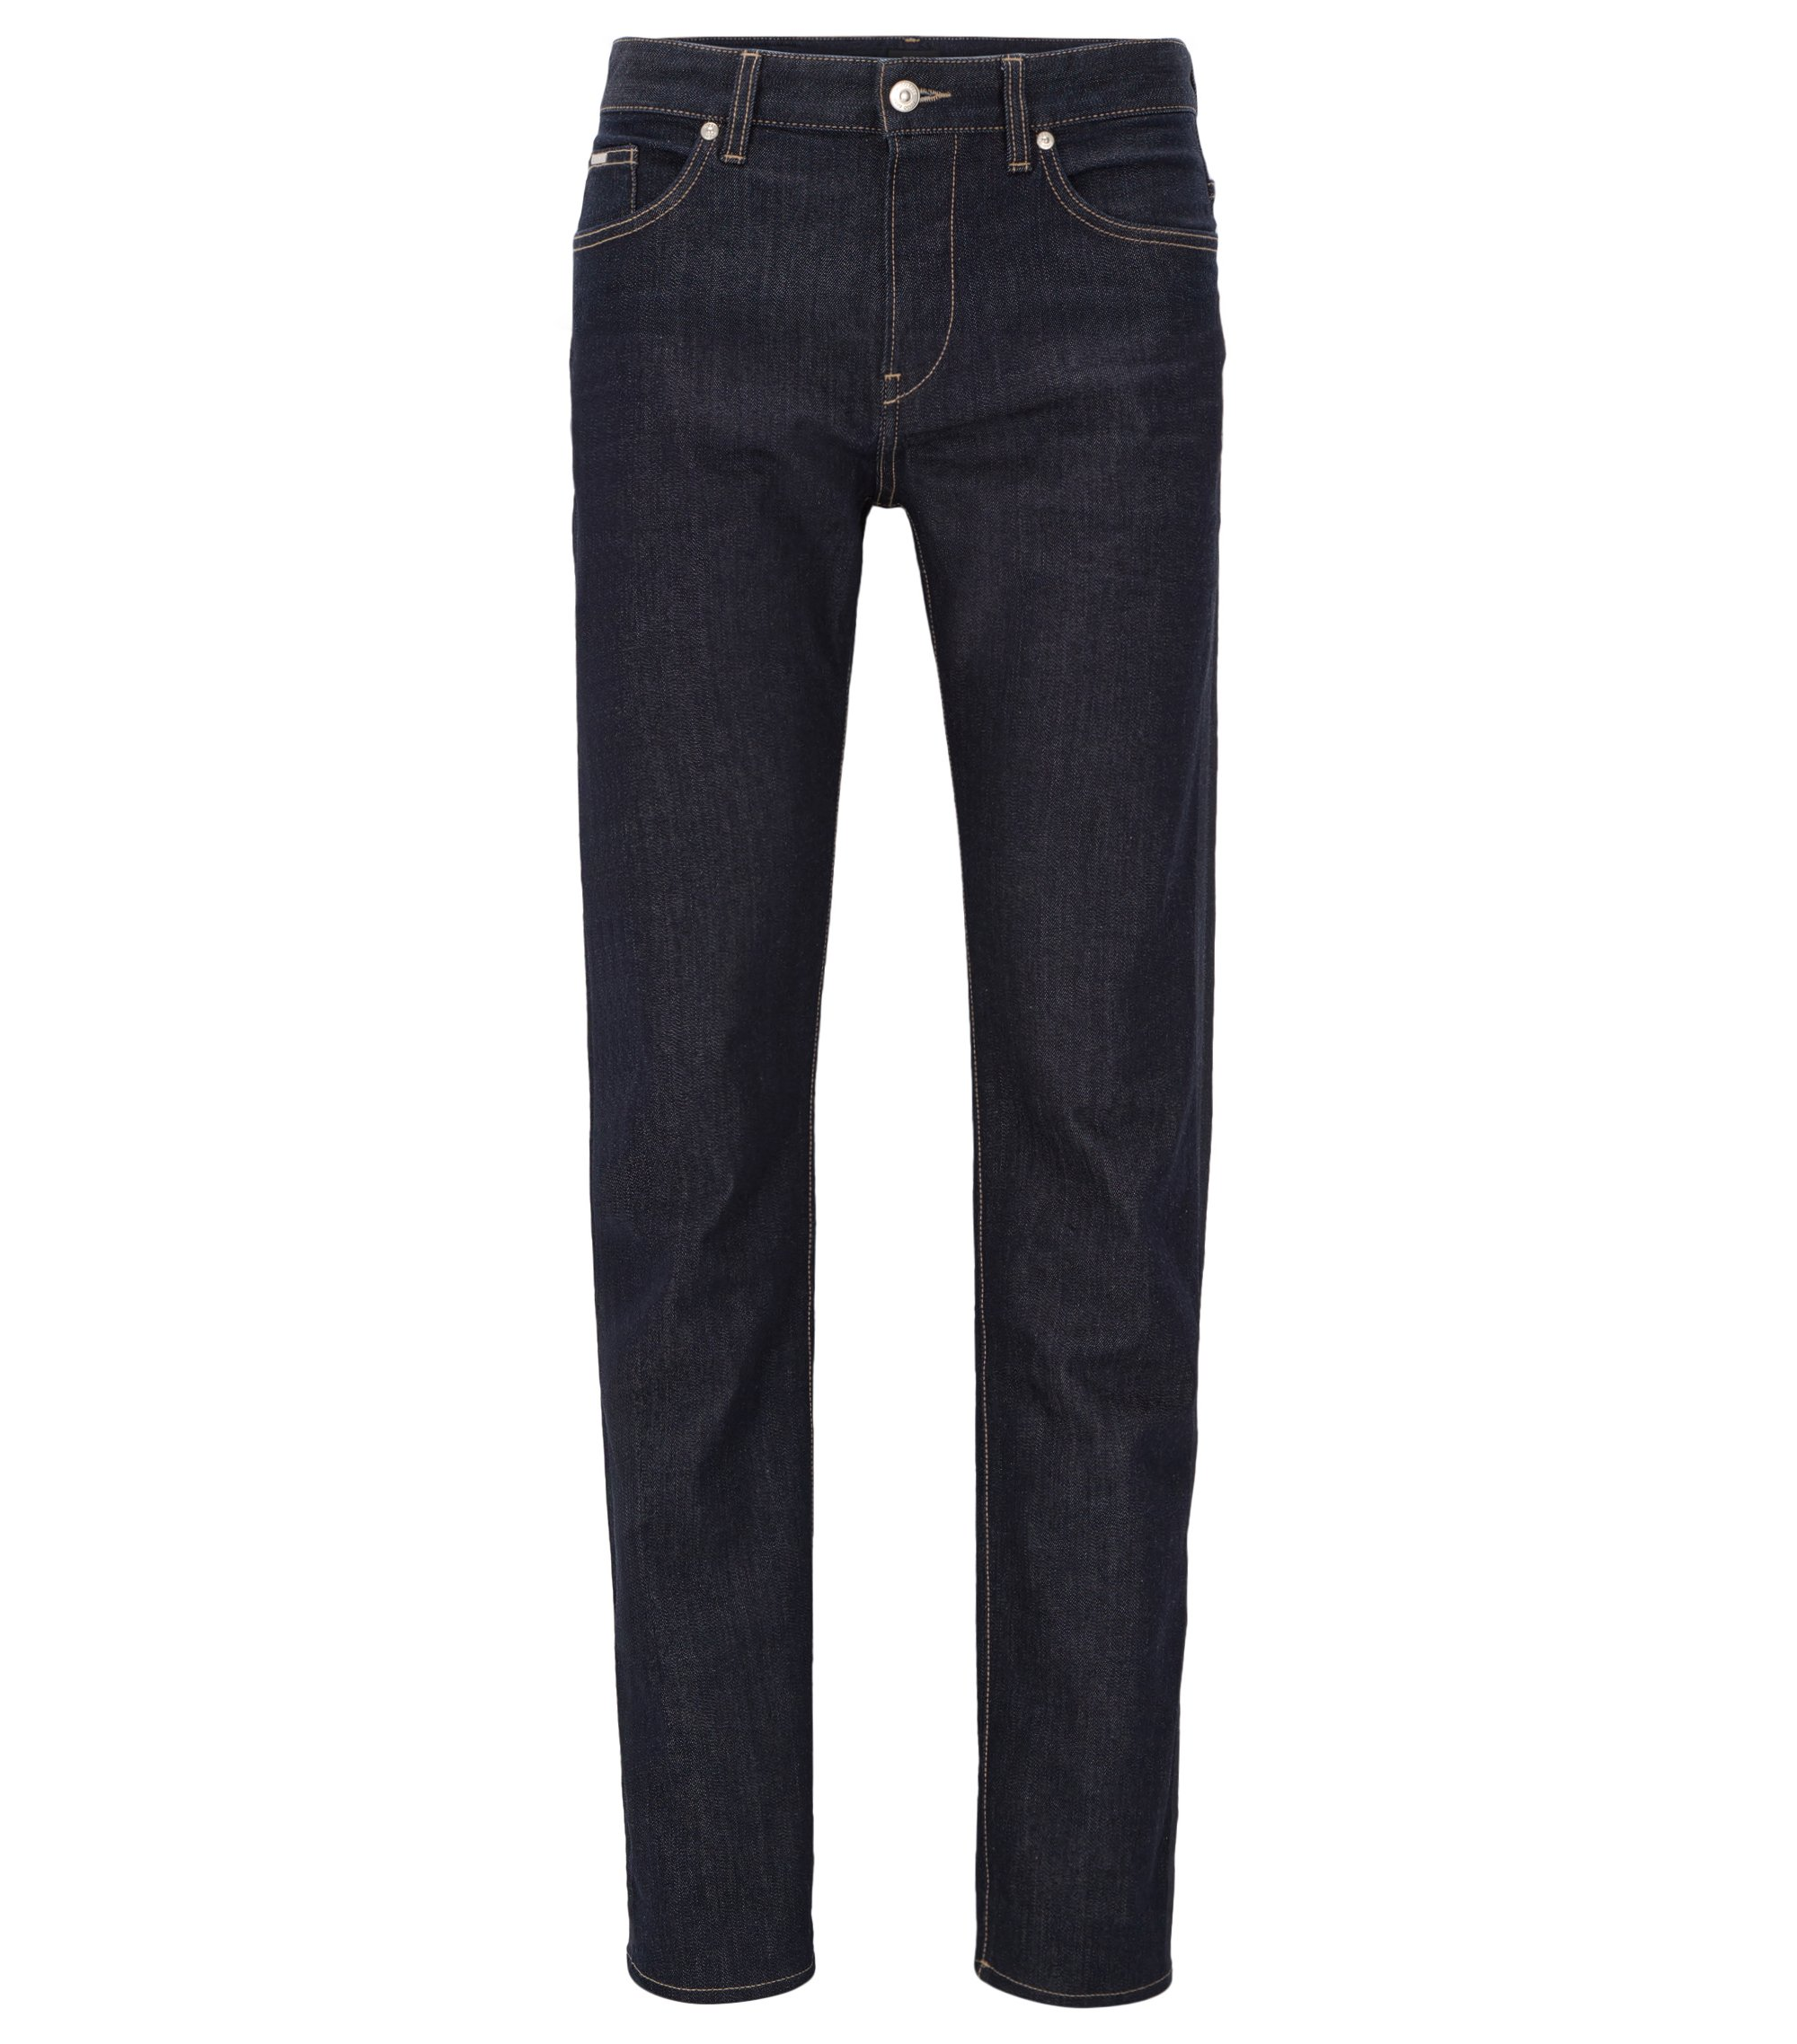 Jeans Slim Fit en denim stretch, Bleu foncé